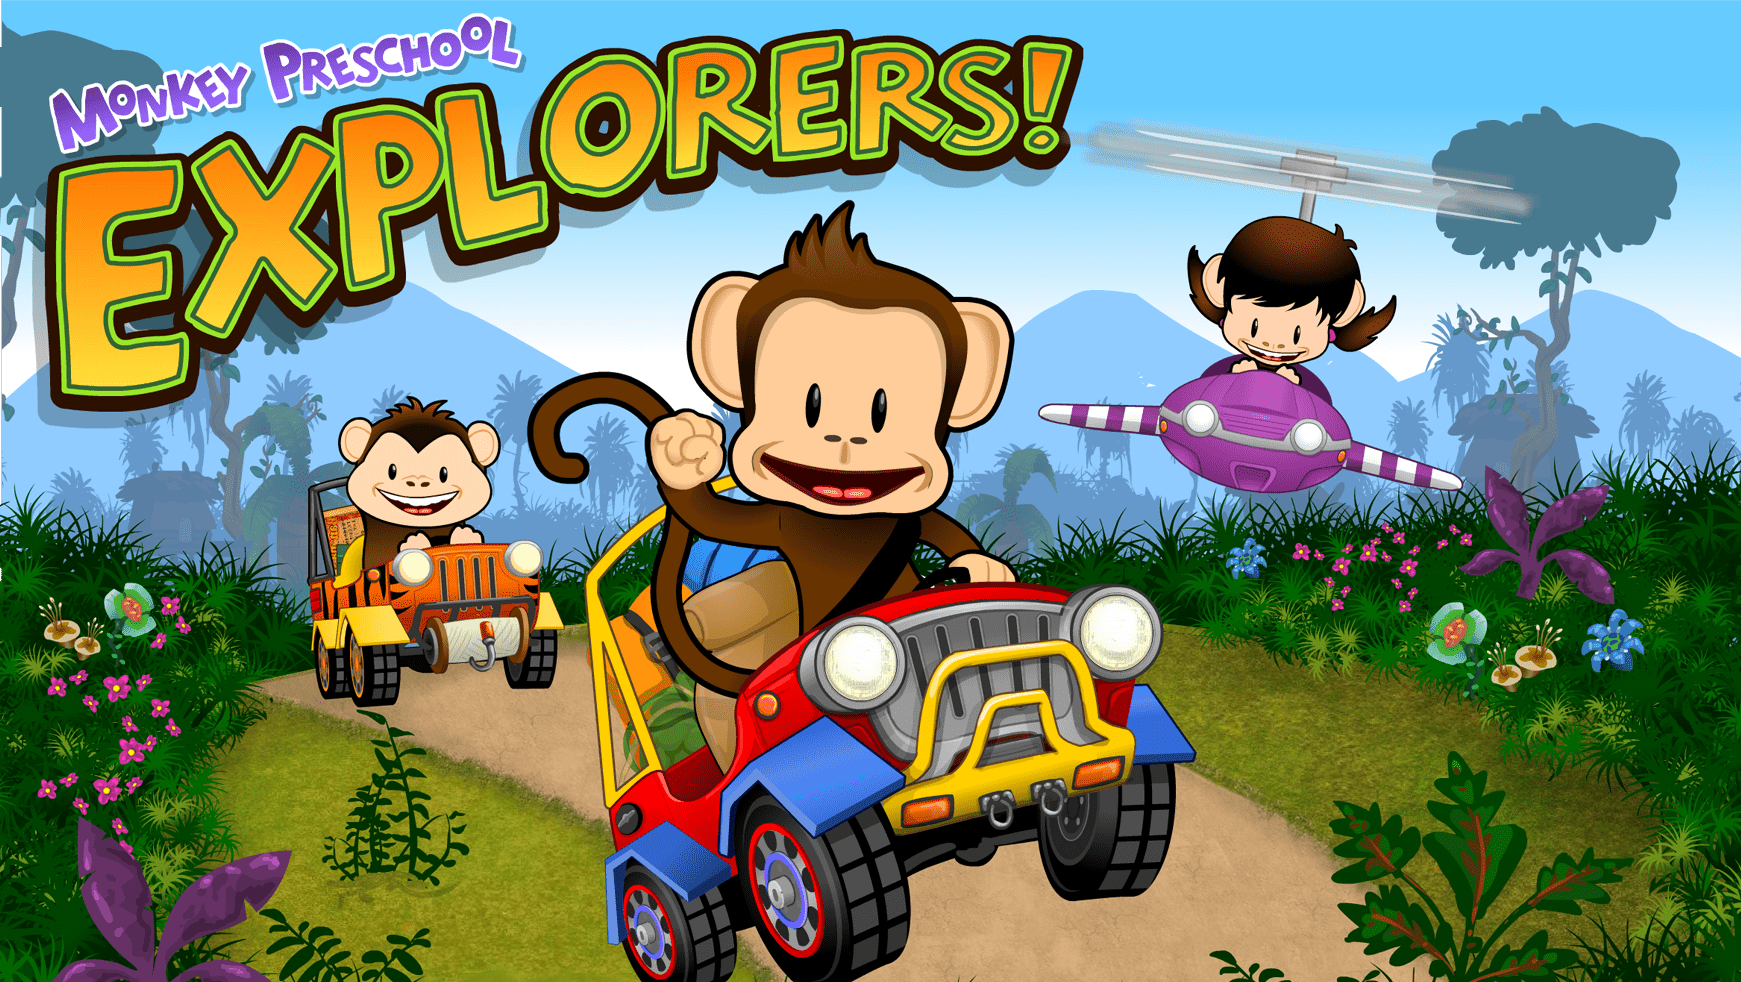 Monkey Preschool Explorers